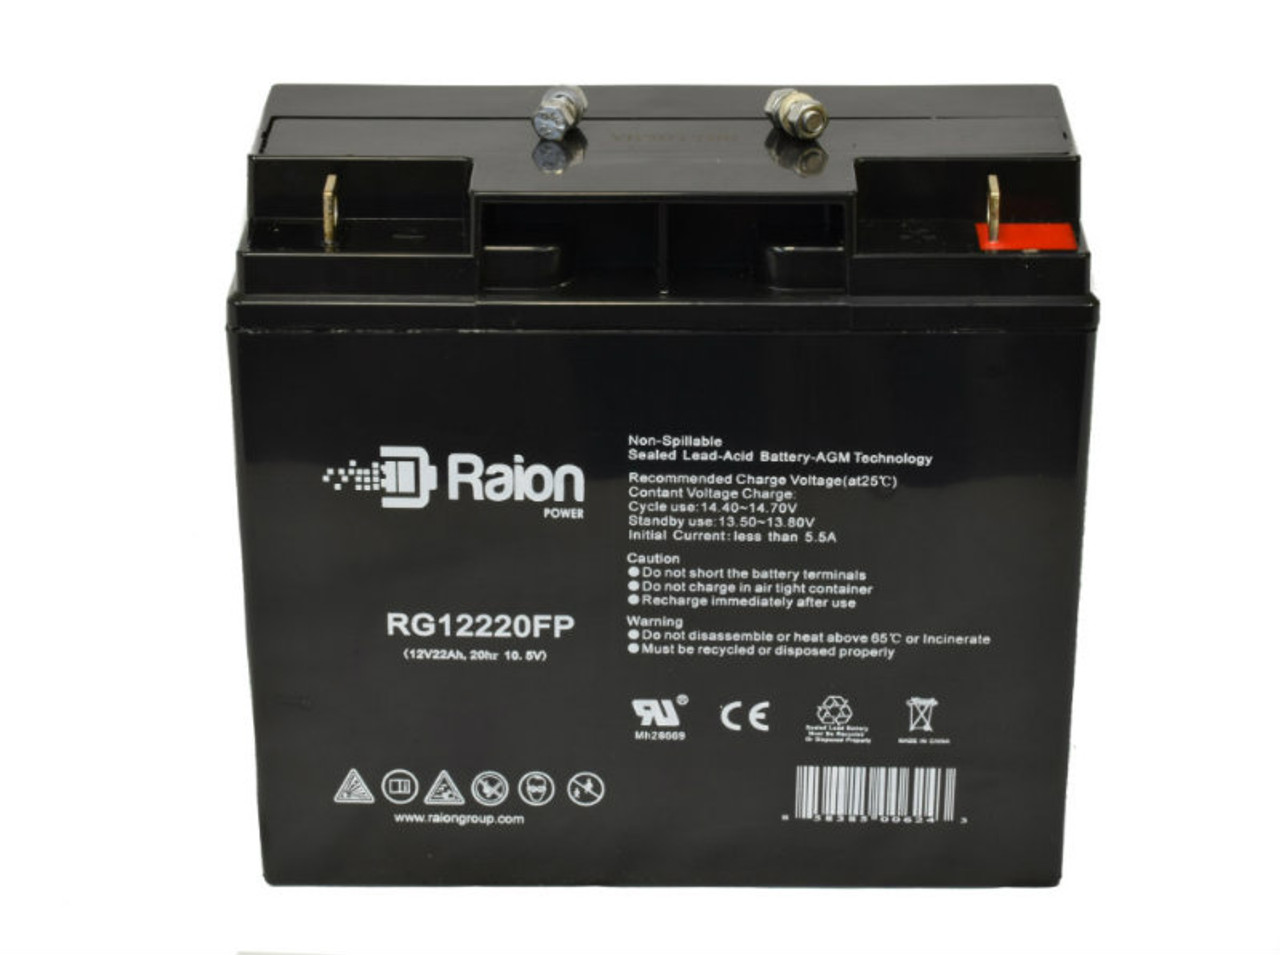 RG12220FP Sealed Lead Acid Battery Pack For Amigo RT Express 690000 Mobility Scooter